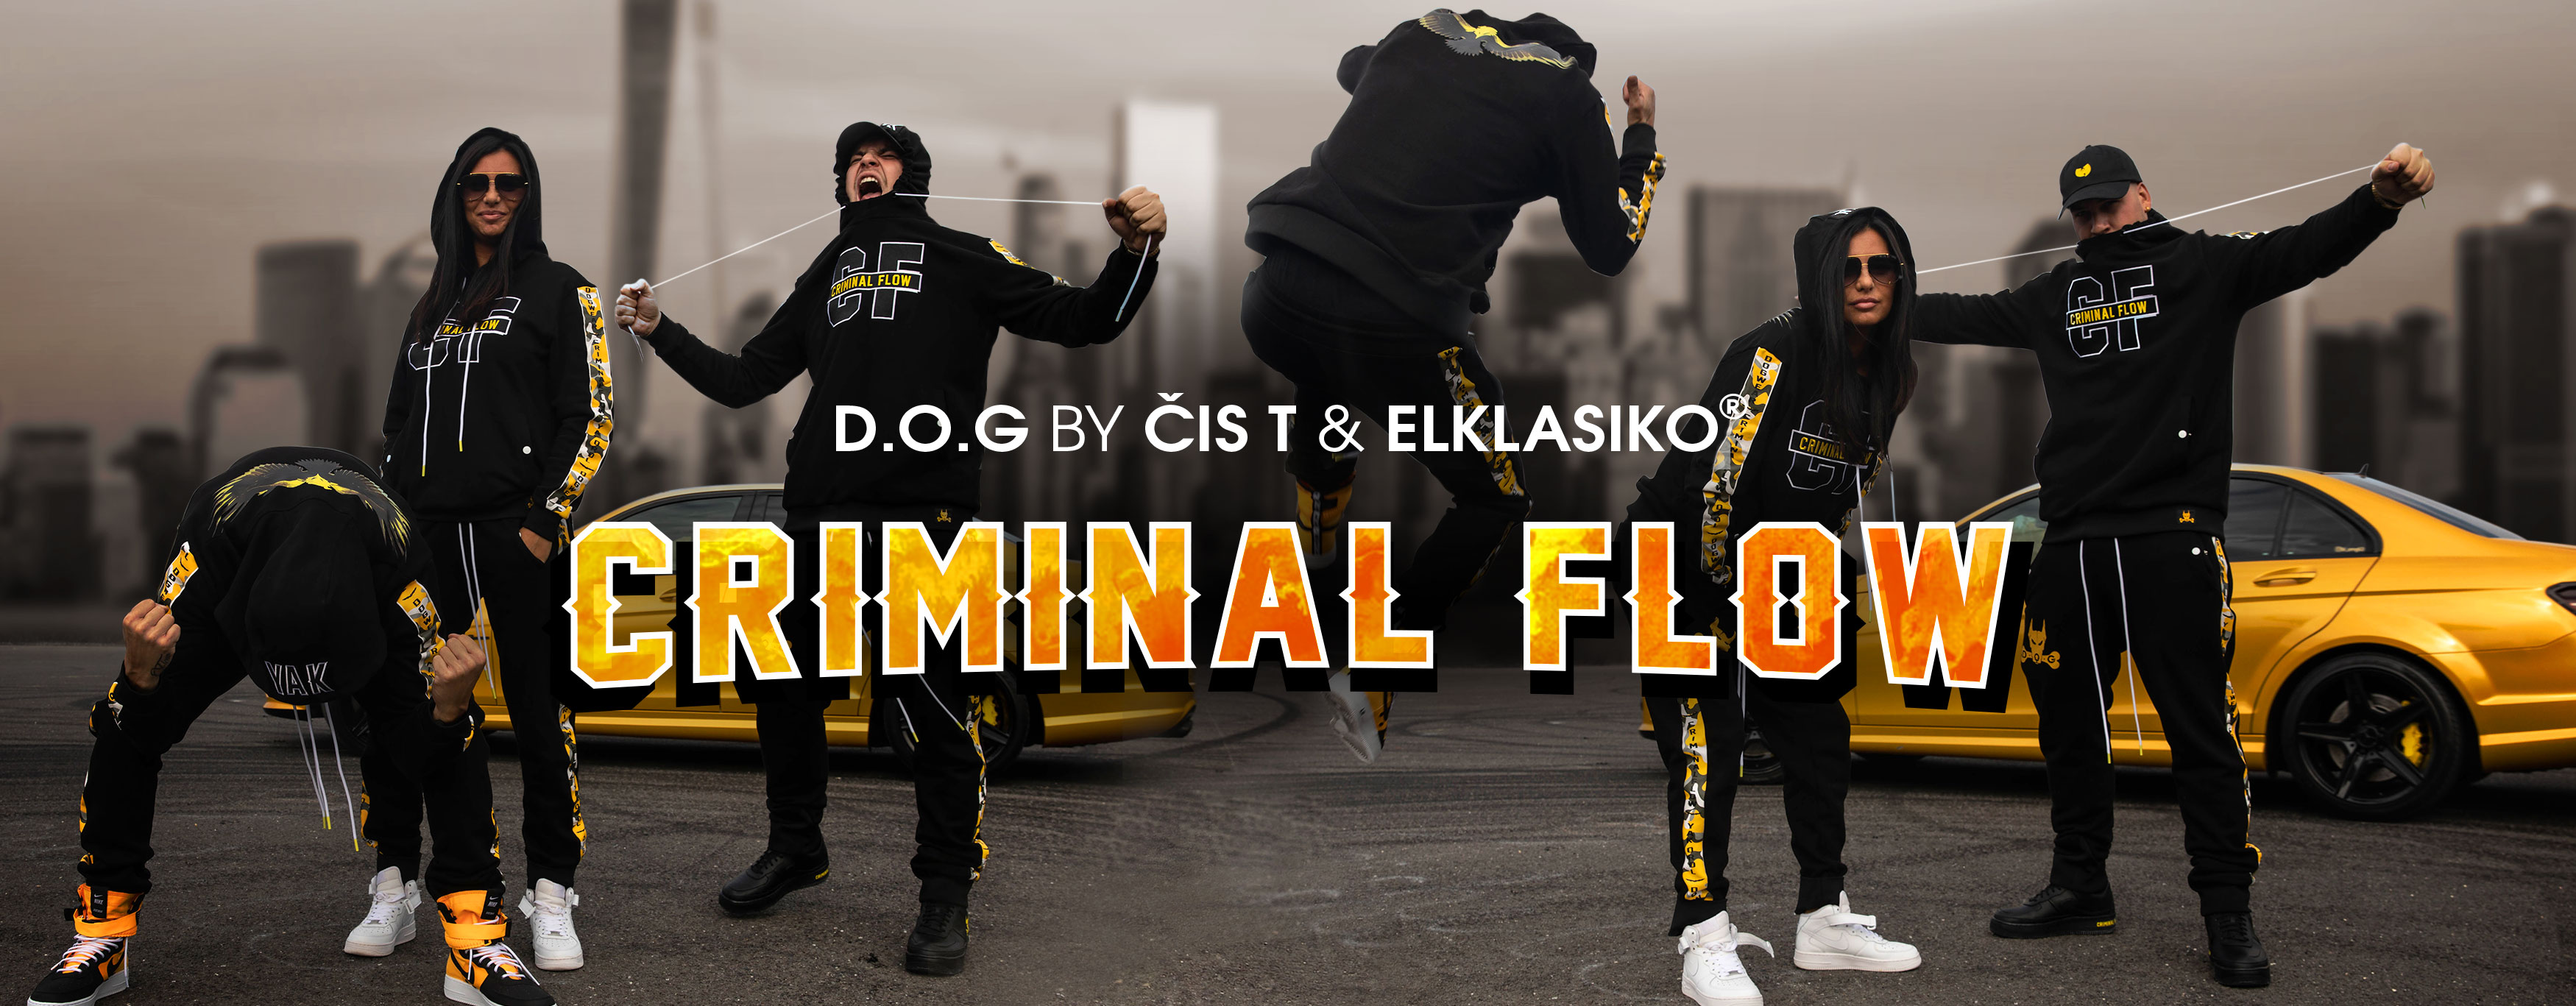 criminal-flow-web